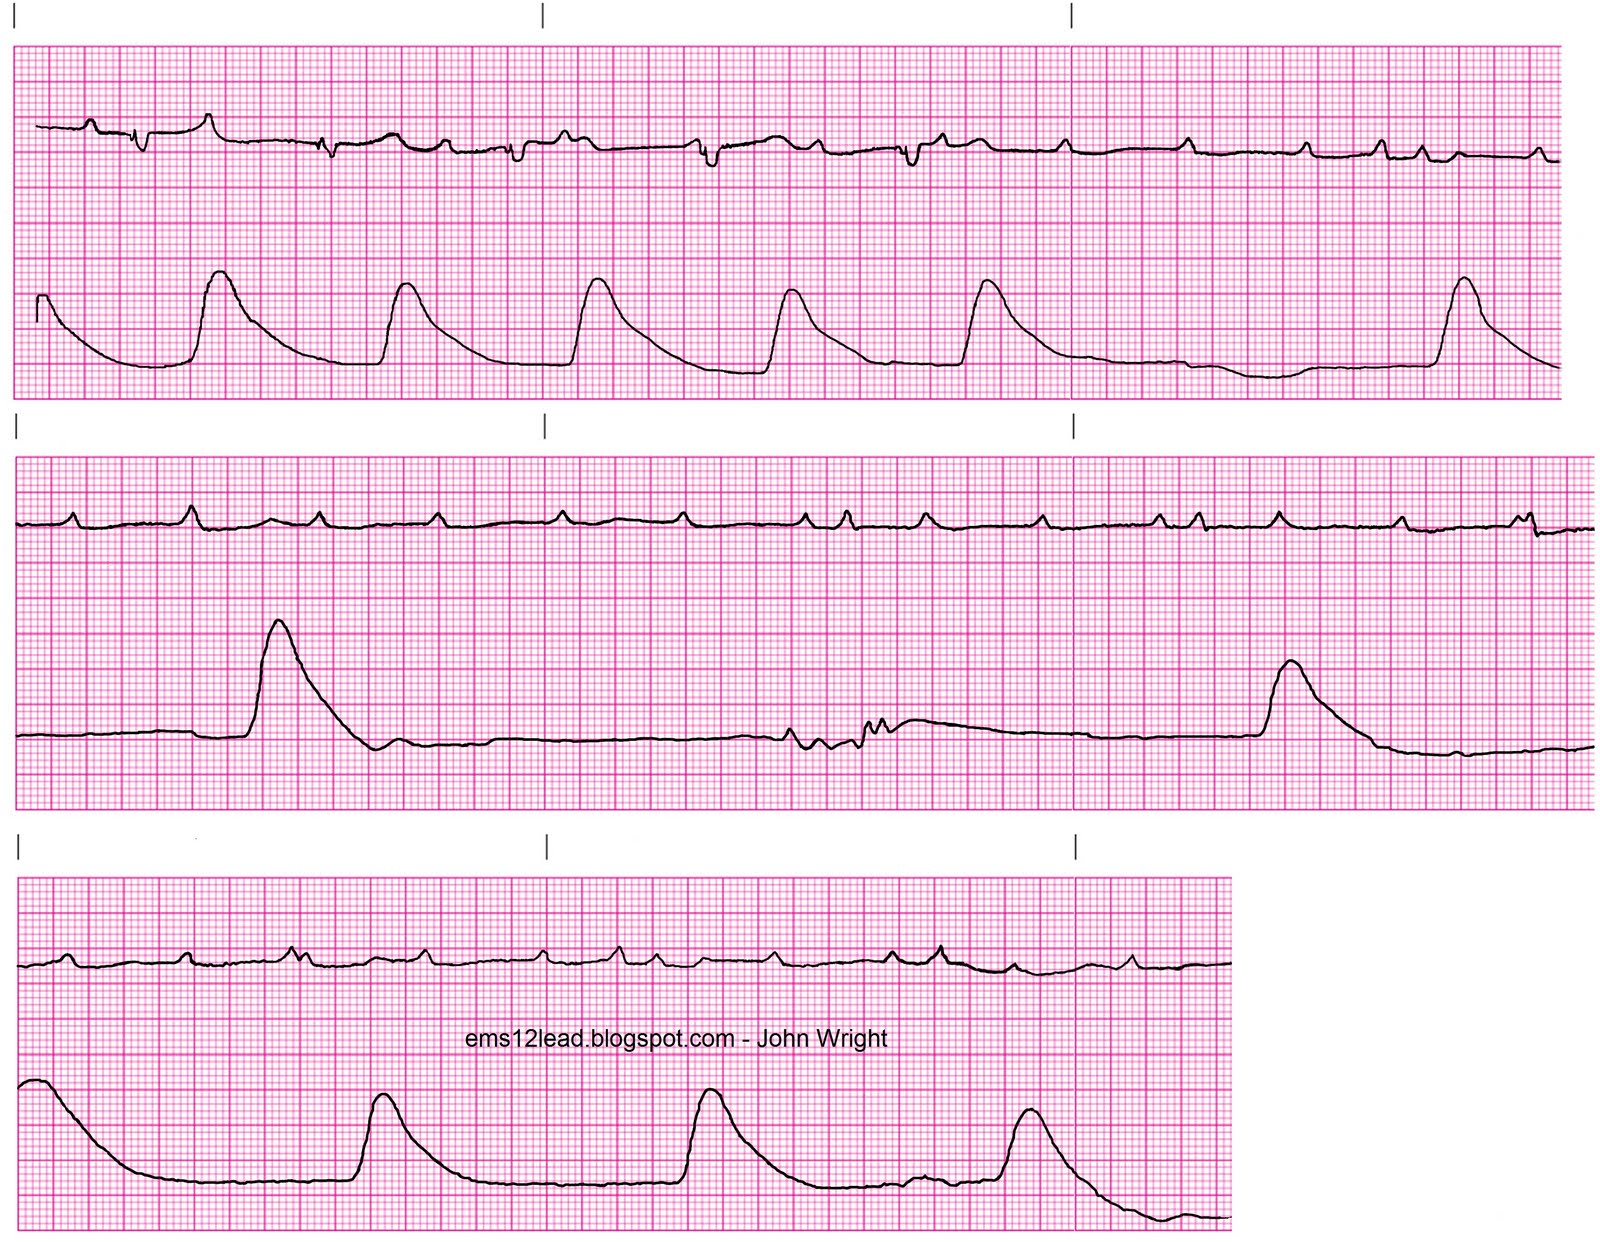 picture relating to Printable Ekg Strips called Cardiac Strips Photographs - Opposite Look